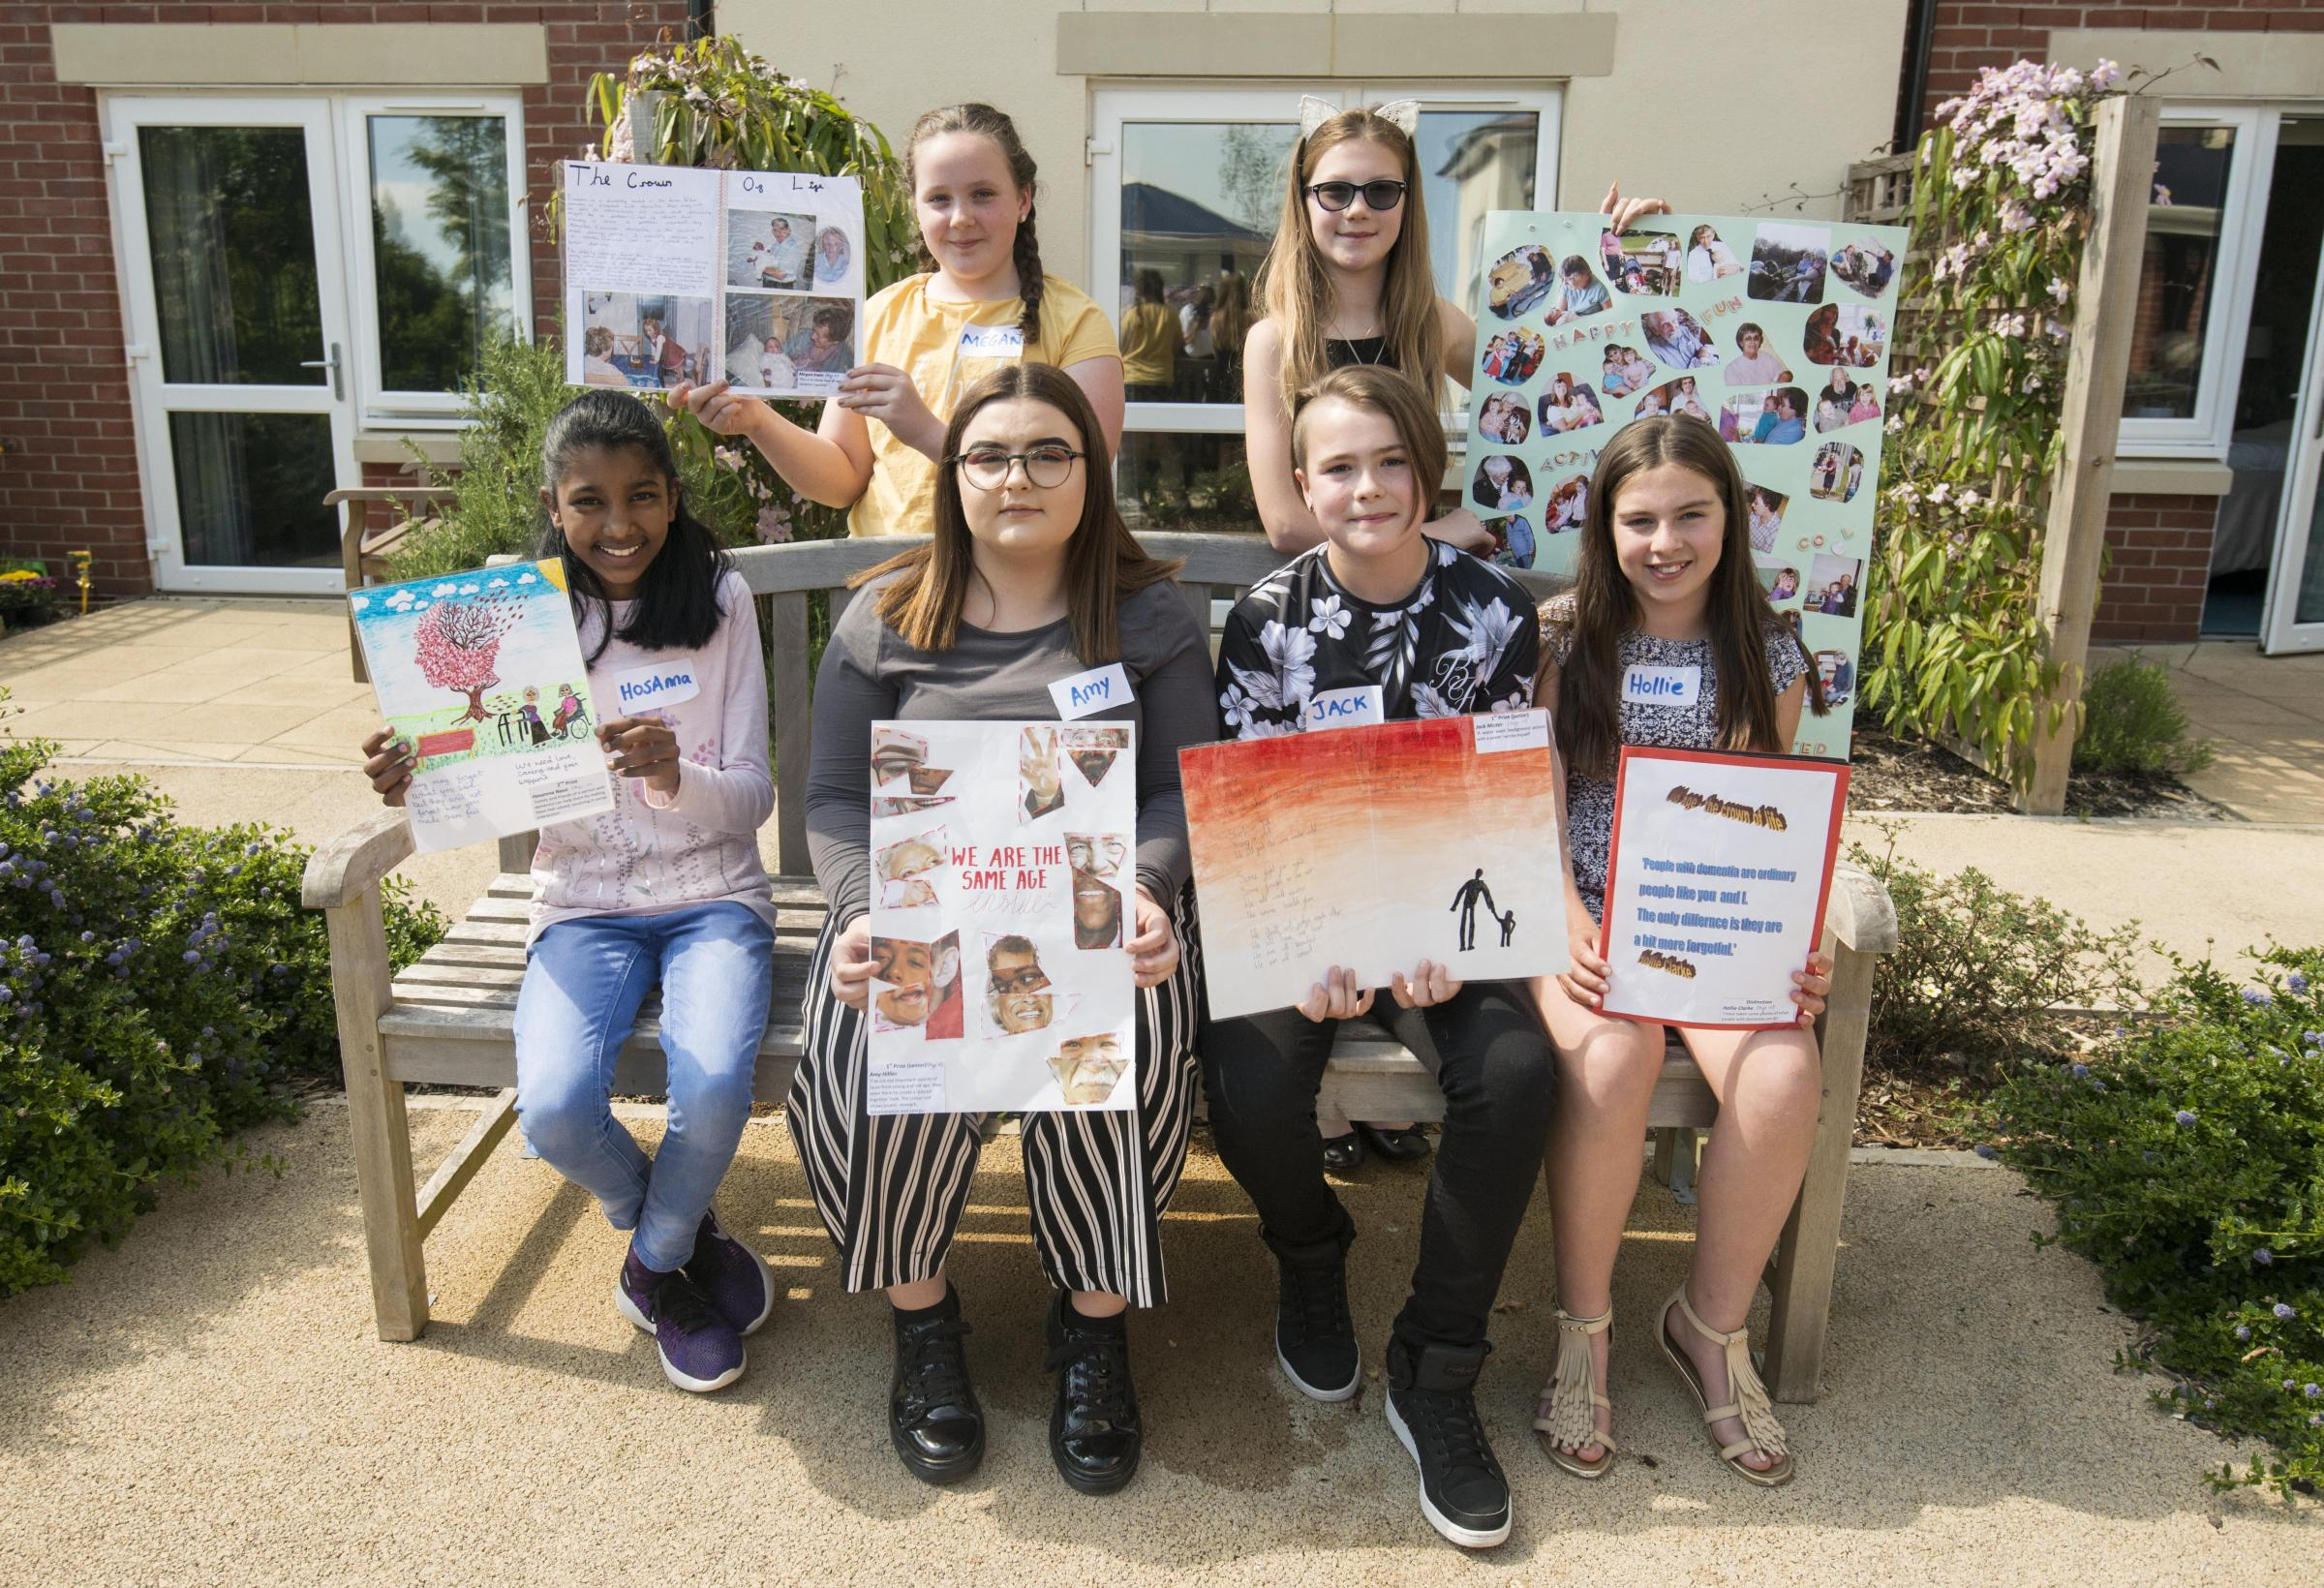 Winners of Art compertition at Abbey House care hone Pictured Back l-r Megan and Katie. Front l-r Hosanna, Amy, Jack, and Hollie19/05/18Pictures Clare Green/ www.claregreenphotography.com